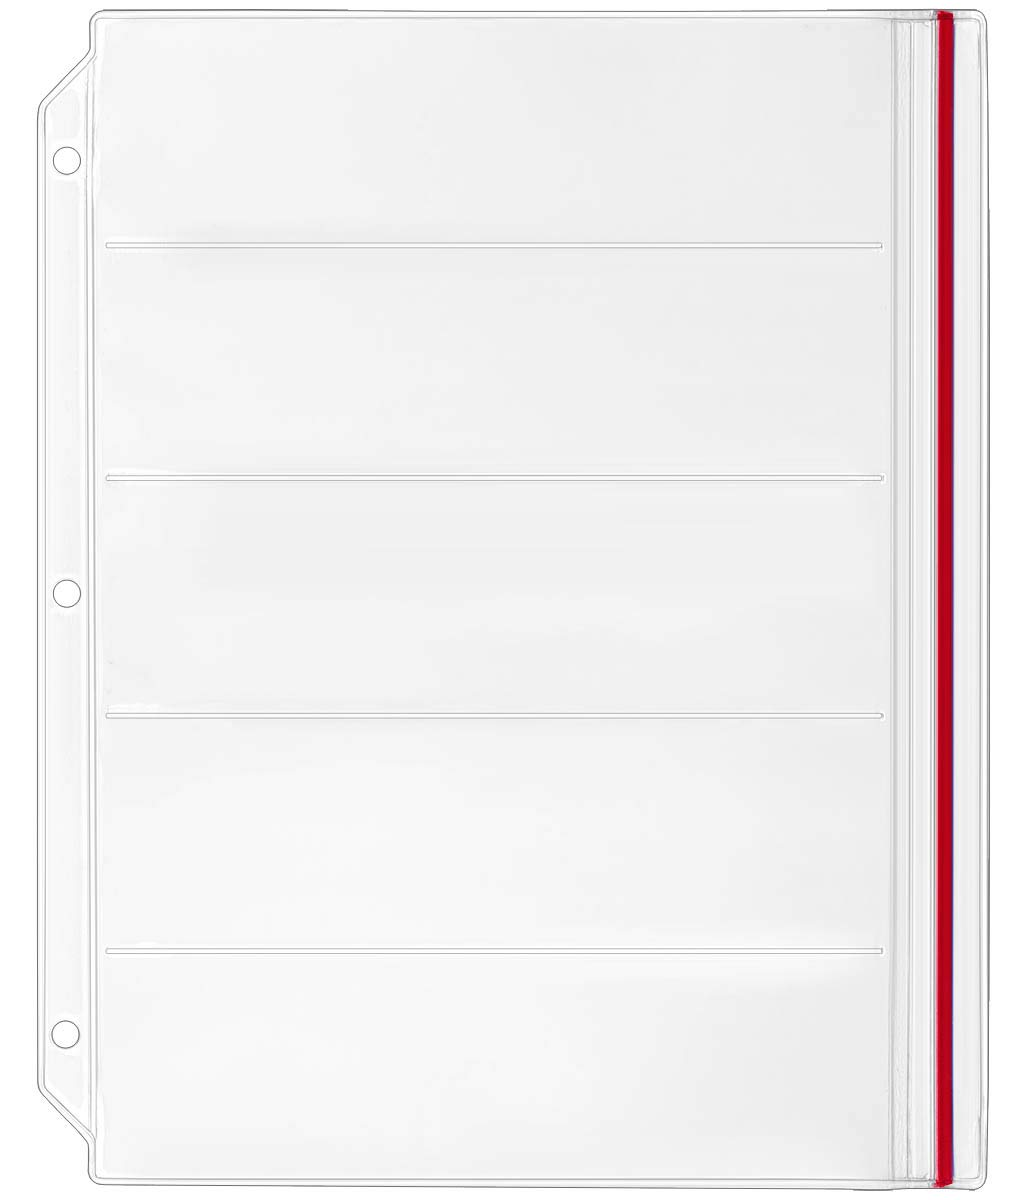 StoreSMART Binder Page for Double Point Needles - Holds 5 Needles per Page - 10-Pack - DP500-5-10 by STORE SMART (Image #2)